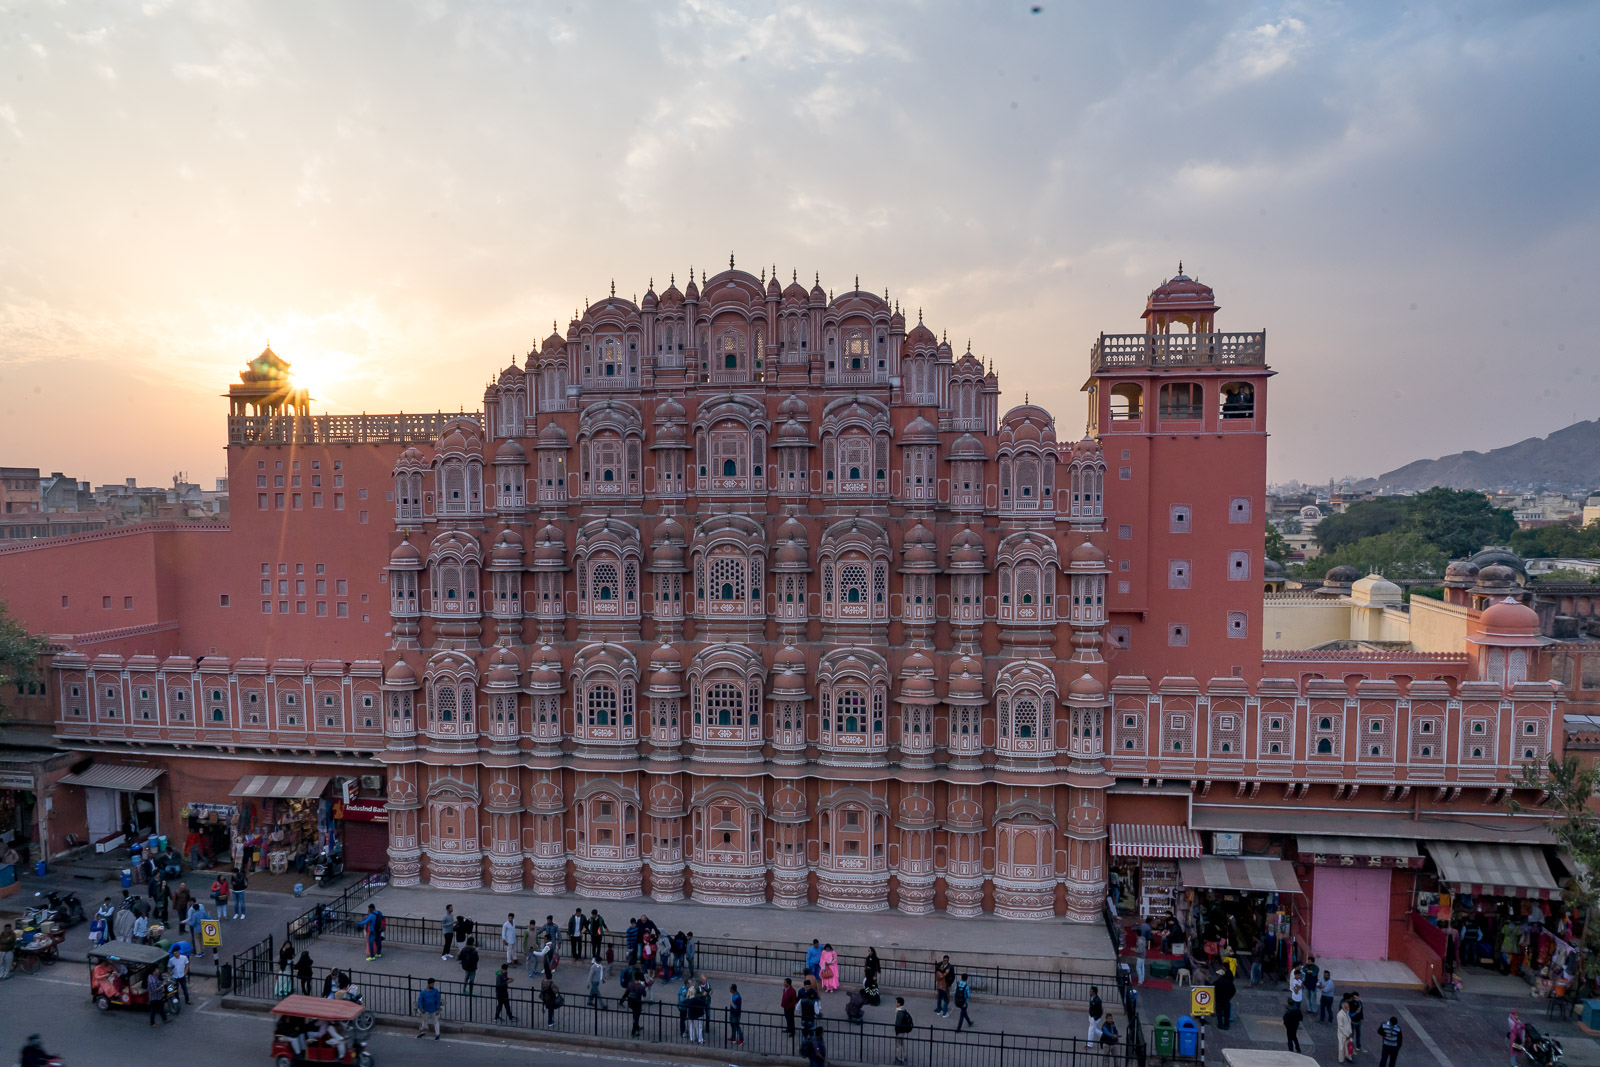 The Best Walking Tours And Places to Visit in Jaipur With Kids or Solo